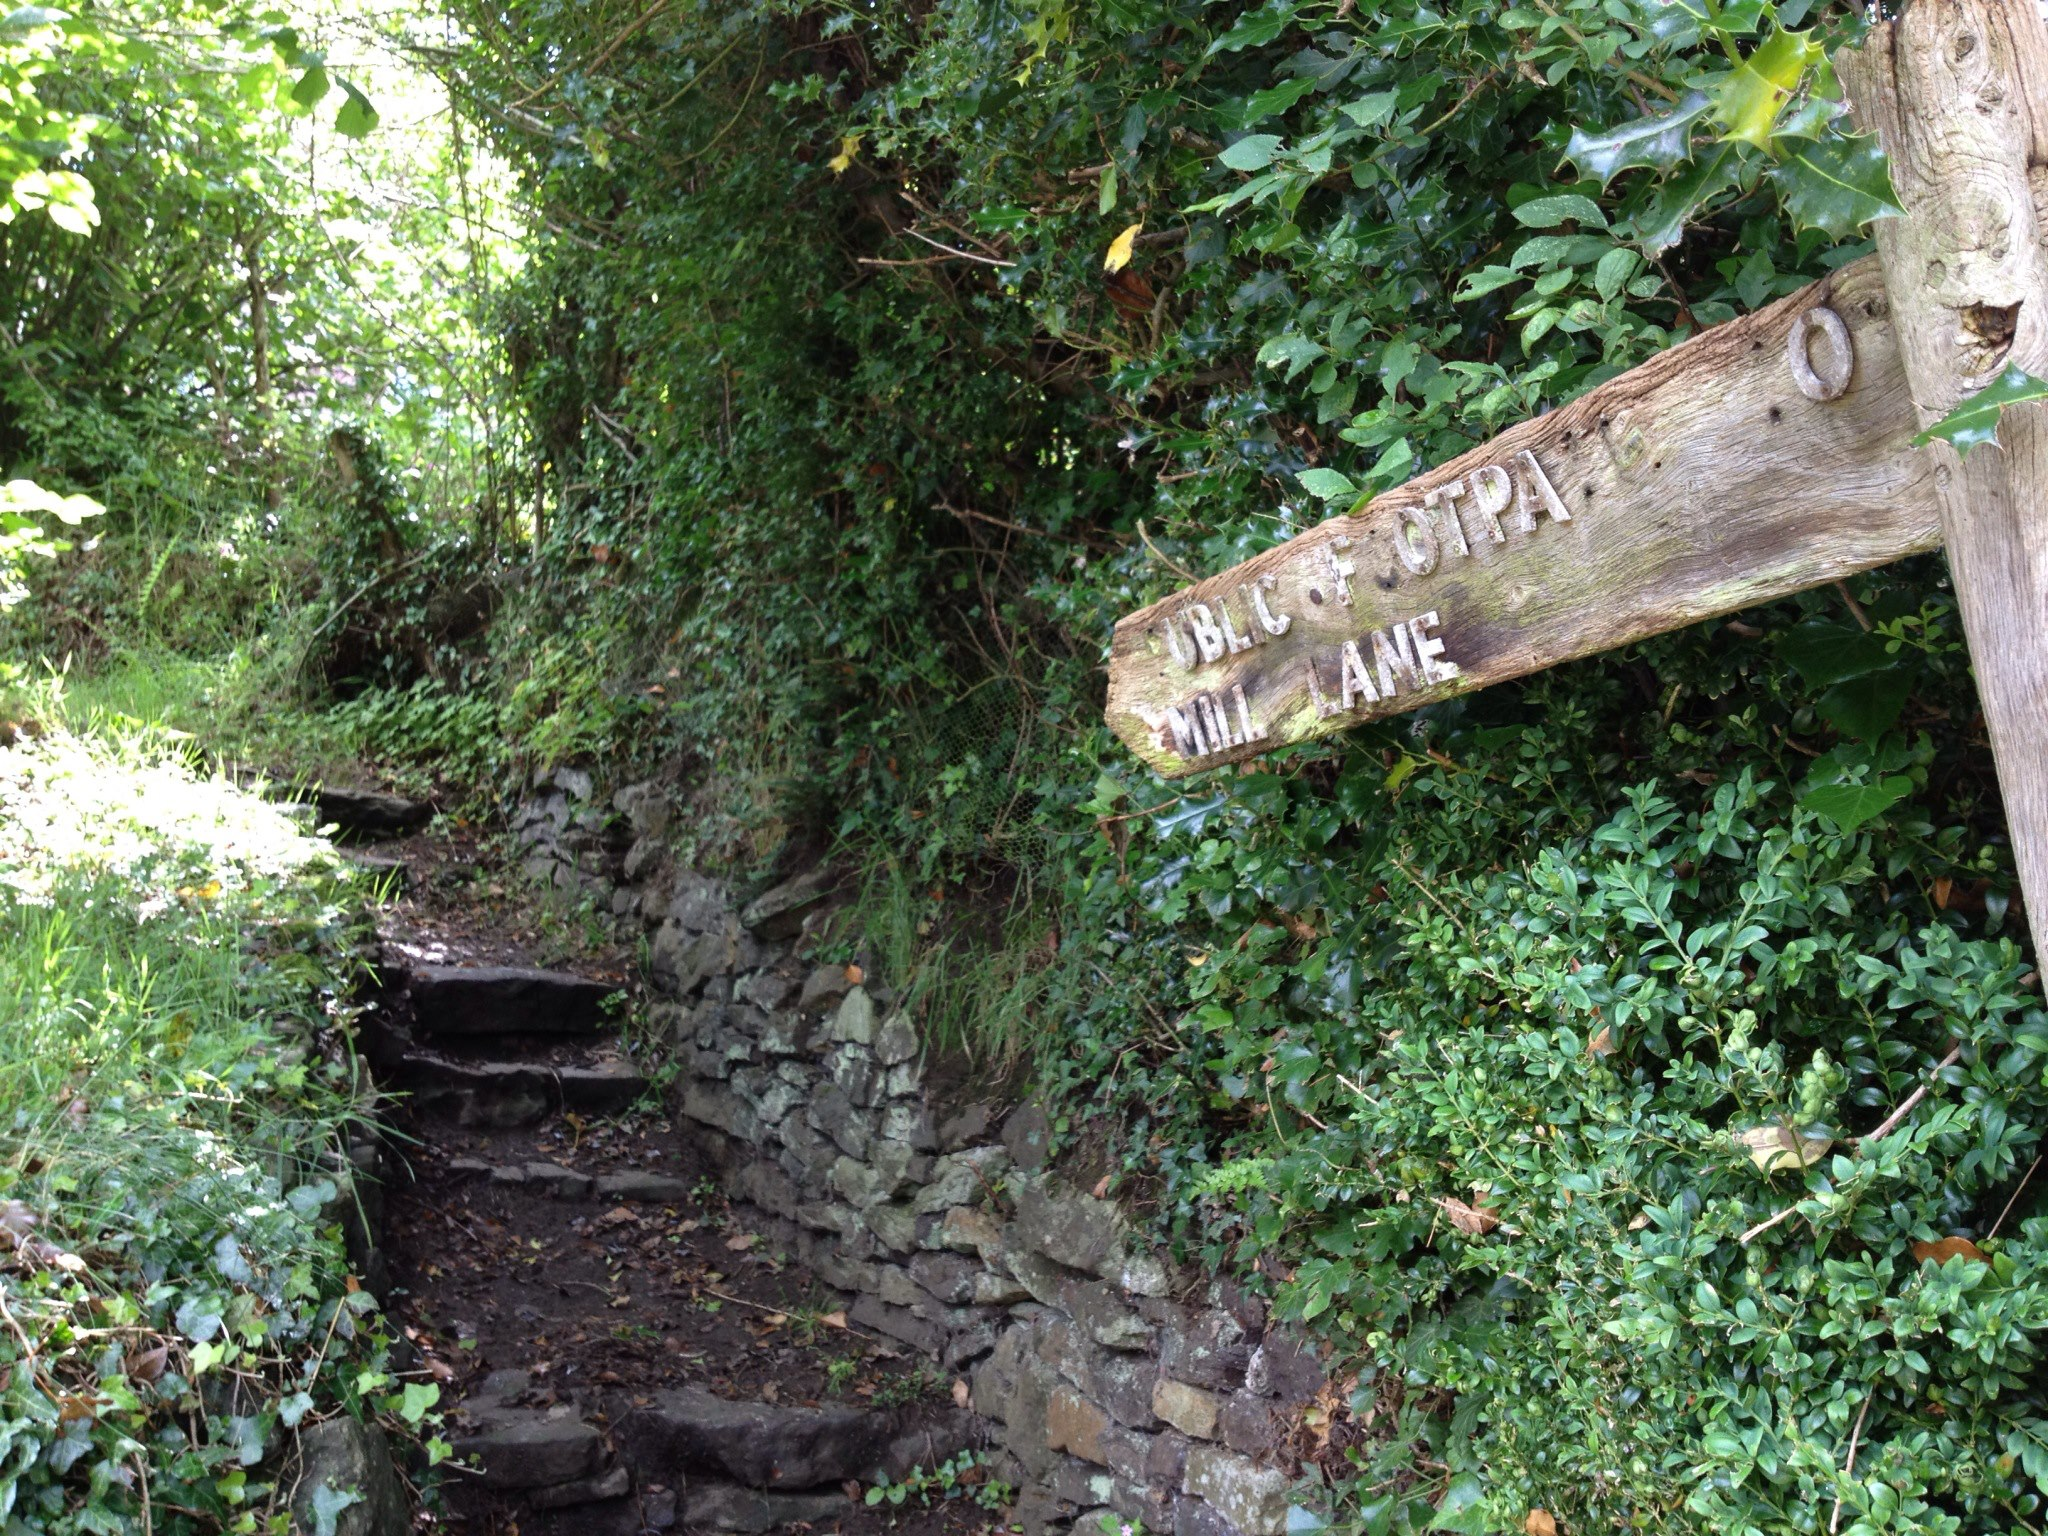 Public footpath sign and steps to Mill Lane